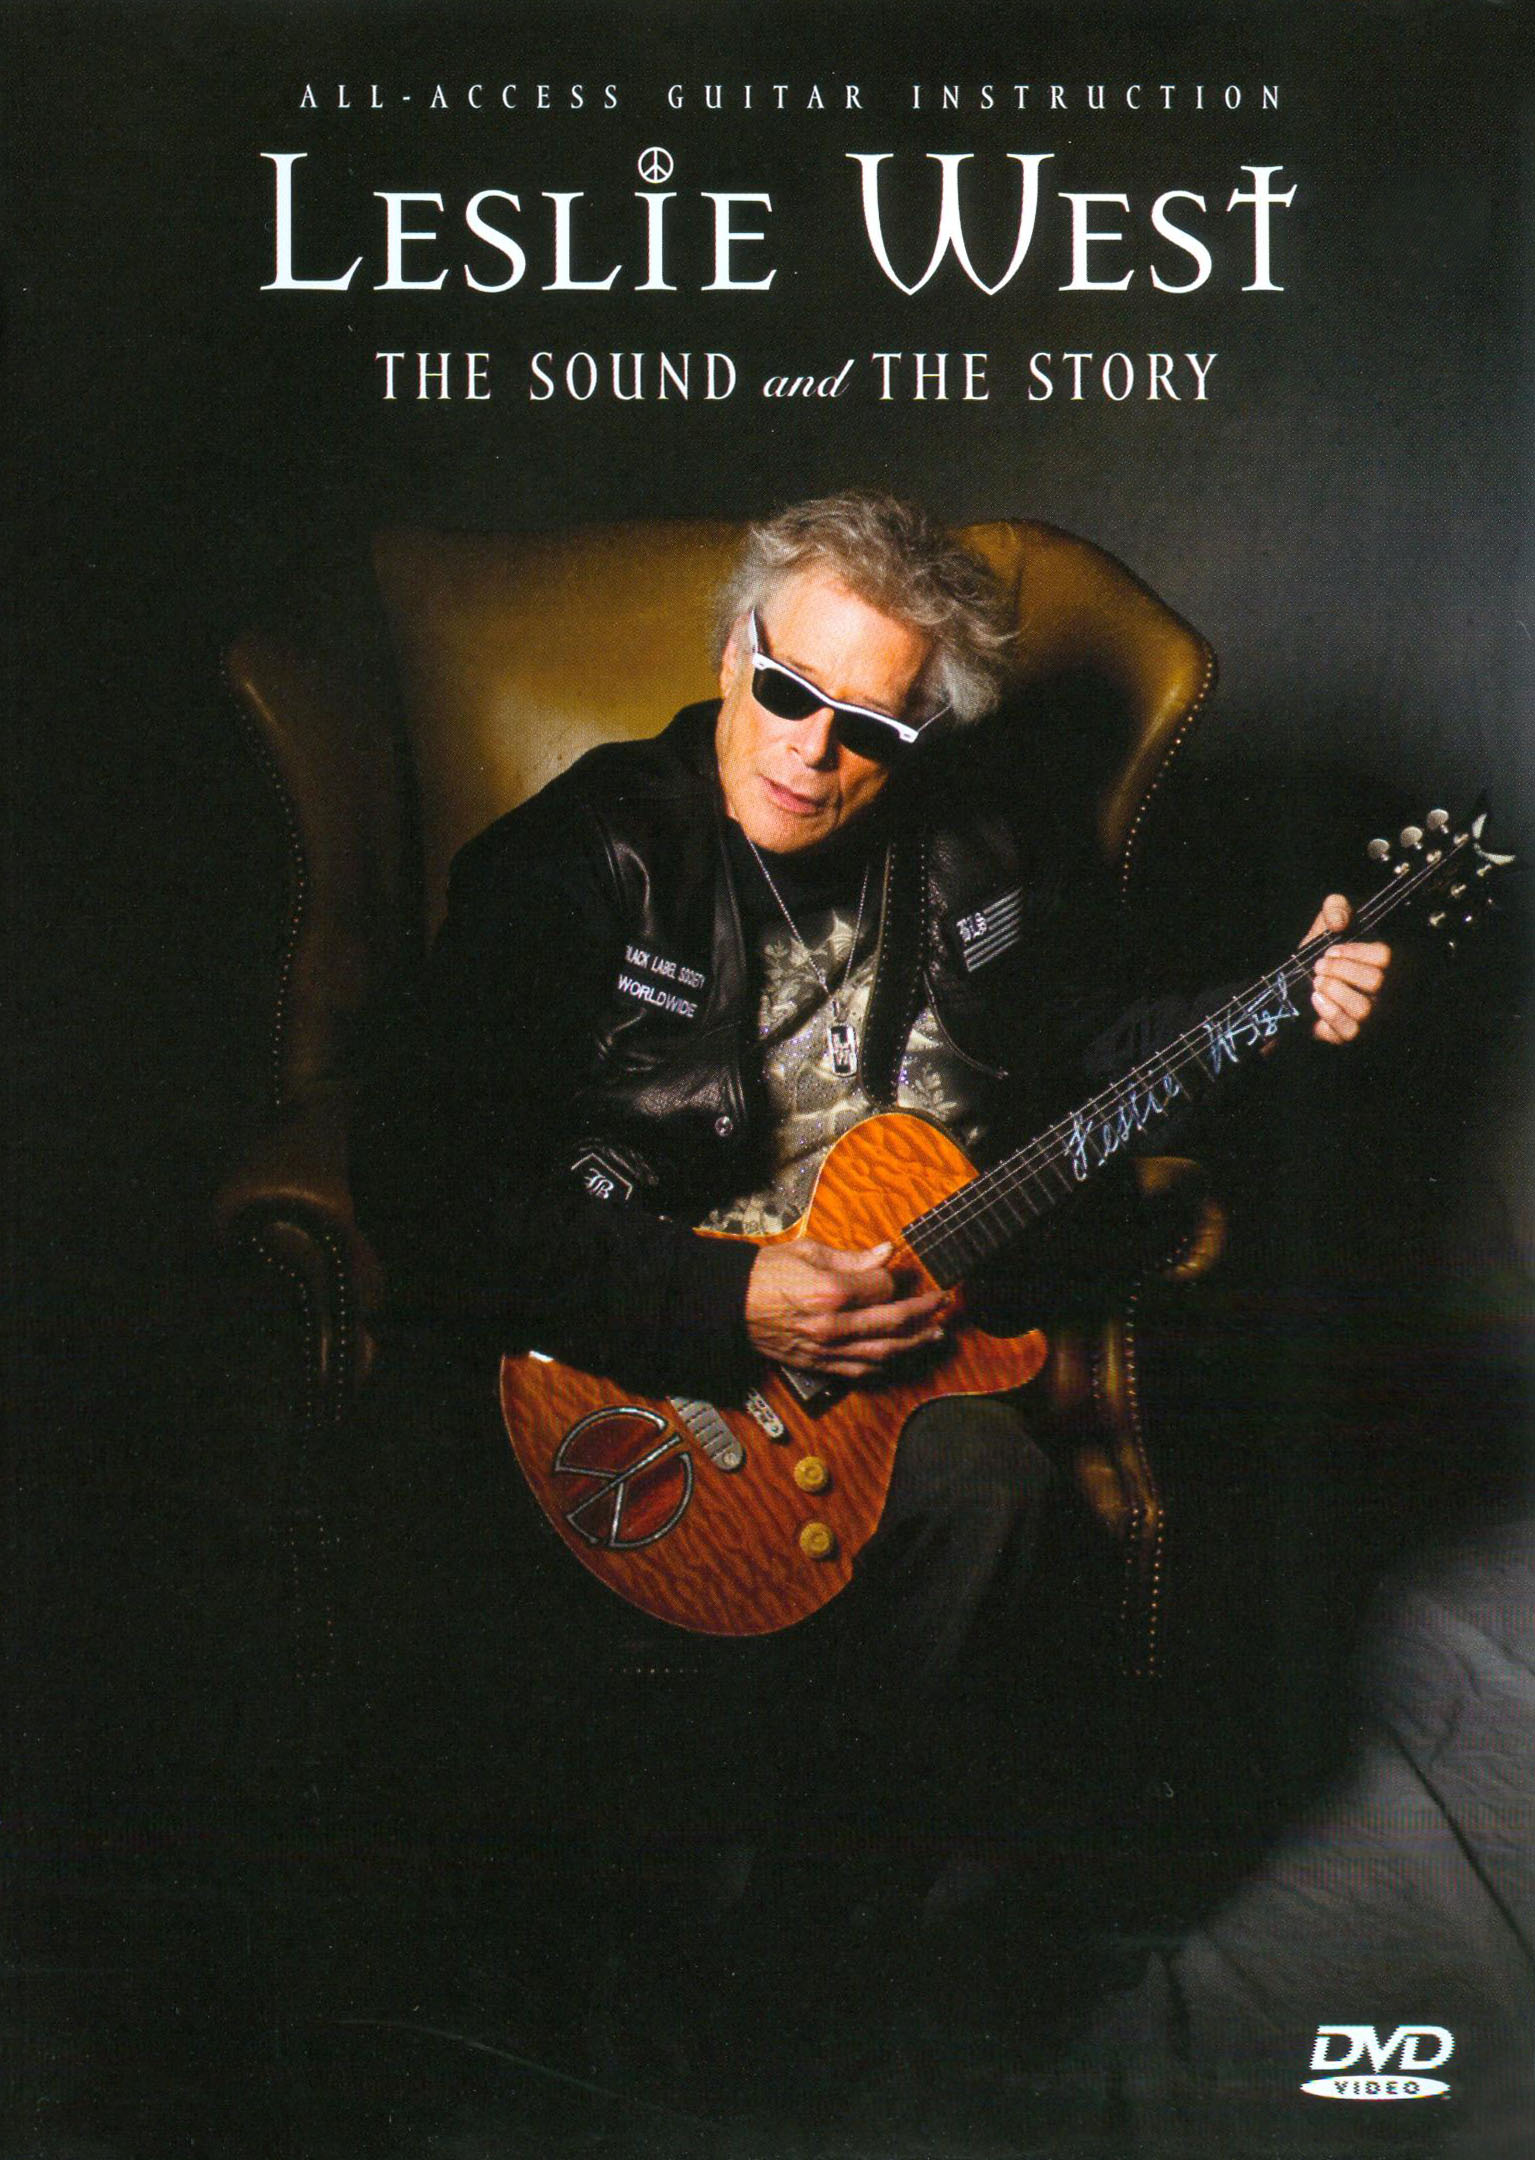 Leslie West: The Sound and the Story